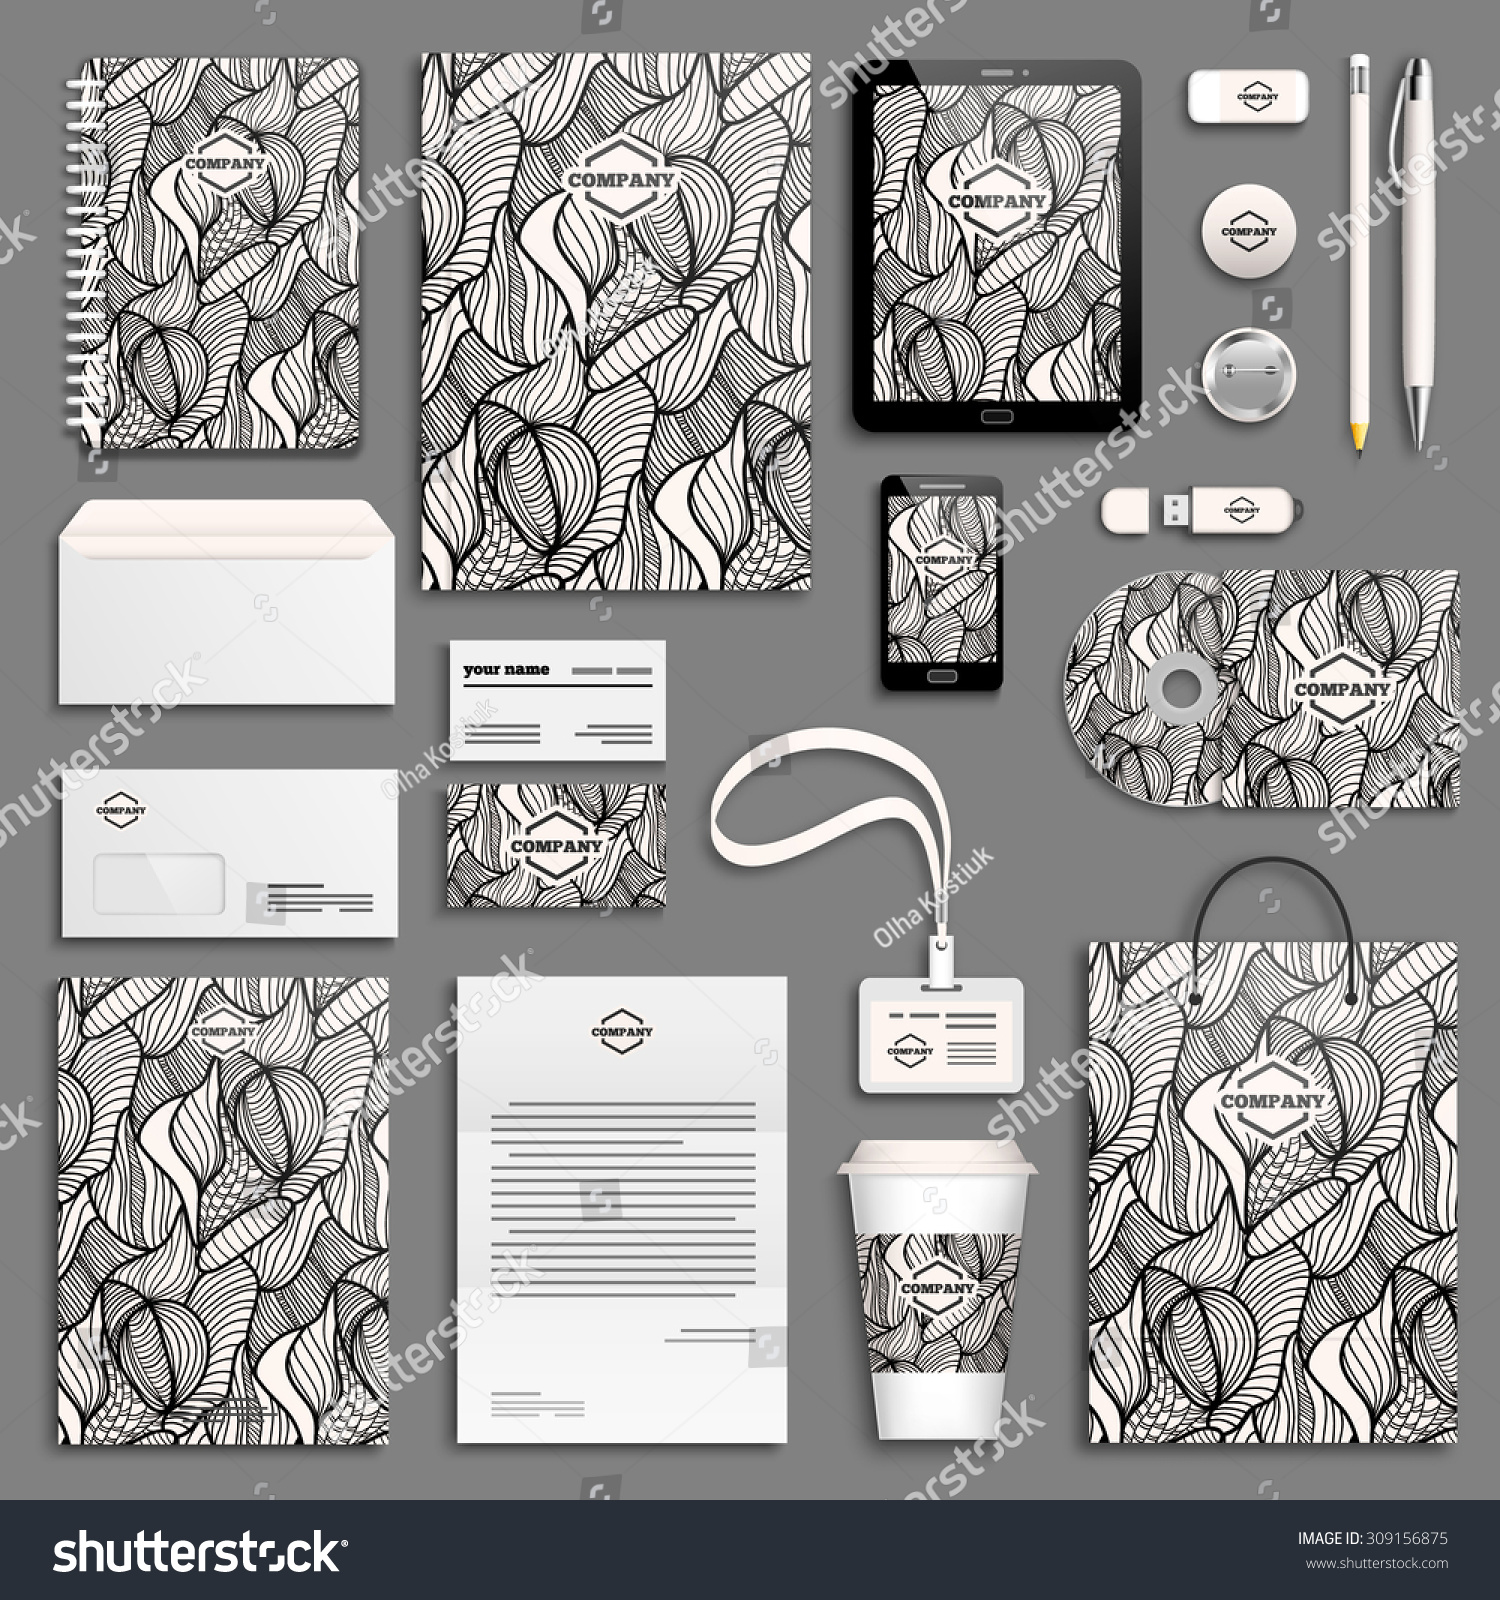 Blank Stationery And Corporate Identity Template Consist: Zentangle Black White Corporate Identity Template Stock